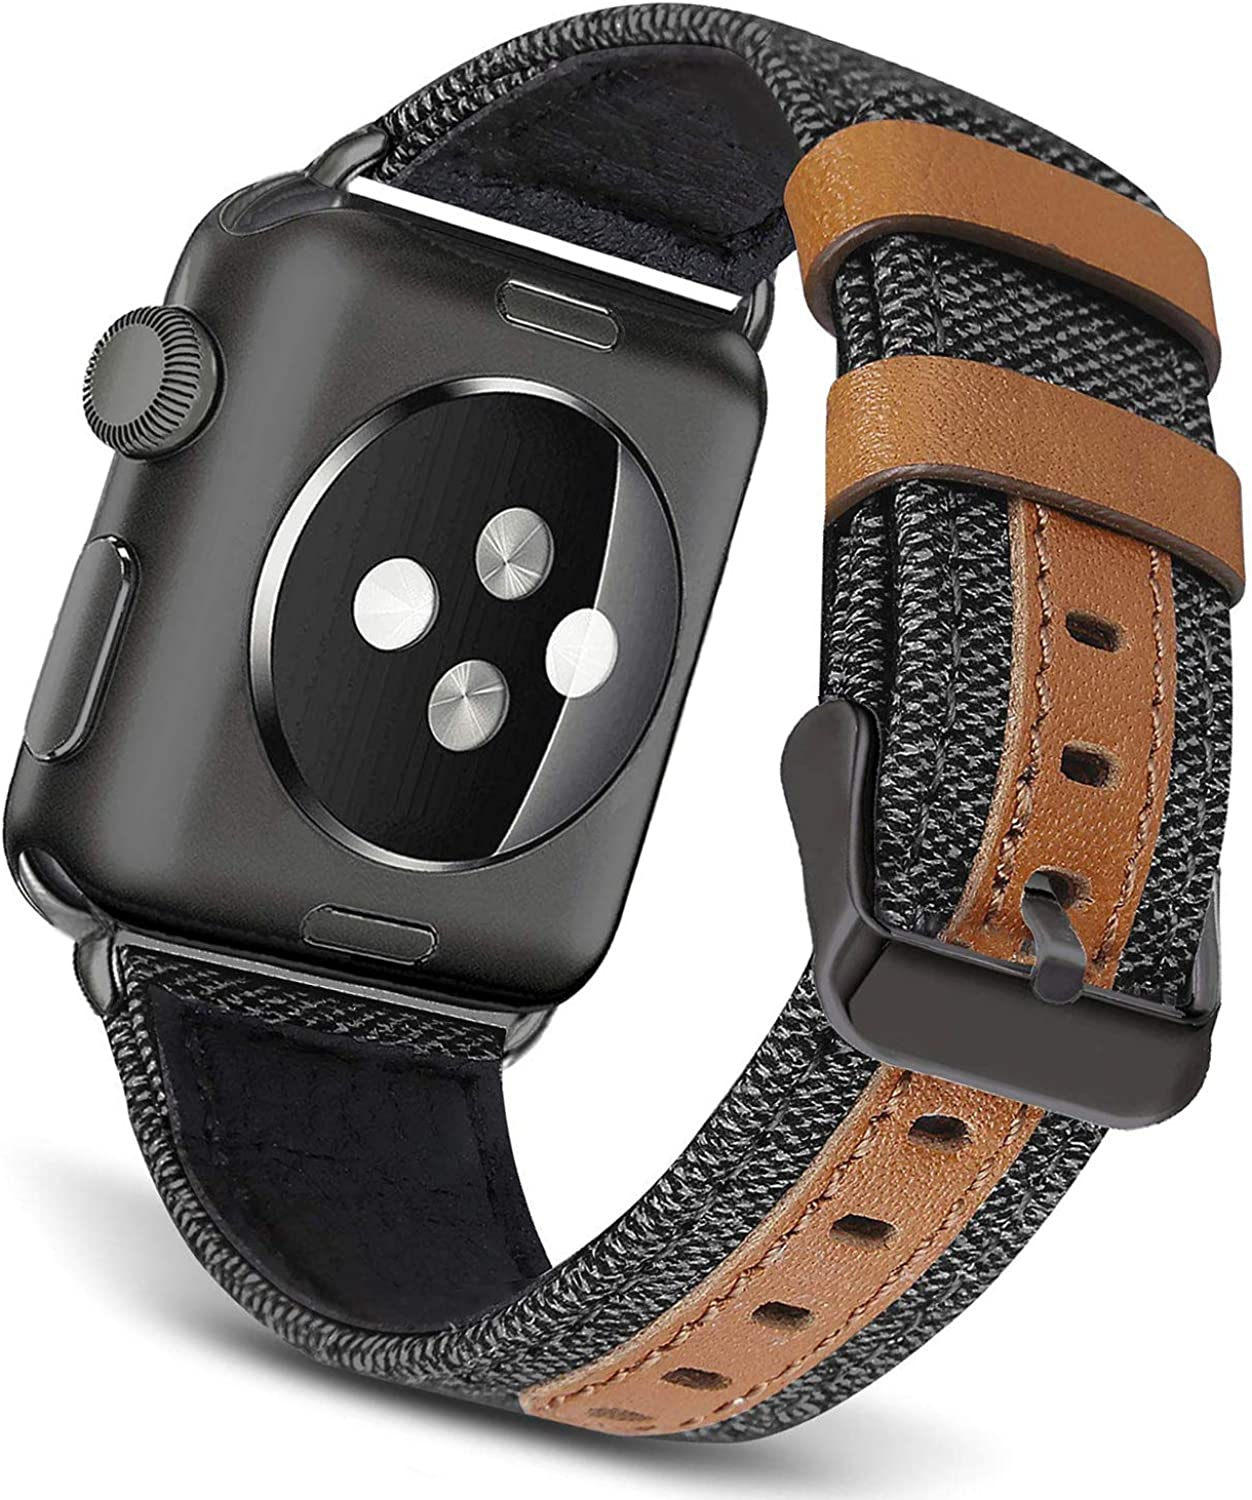 BATINY Compatible with Apple Watch Band Canvas 38mm 40mm 42mm 44mm Black Grey Bands Fabric with Leather Wristbands Black/Silver Buckle for iWatch Series 5, Series 4, Series 3, Series 2, Series 1